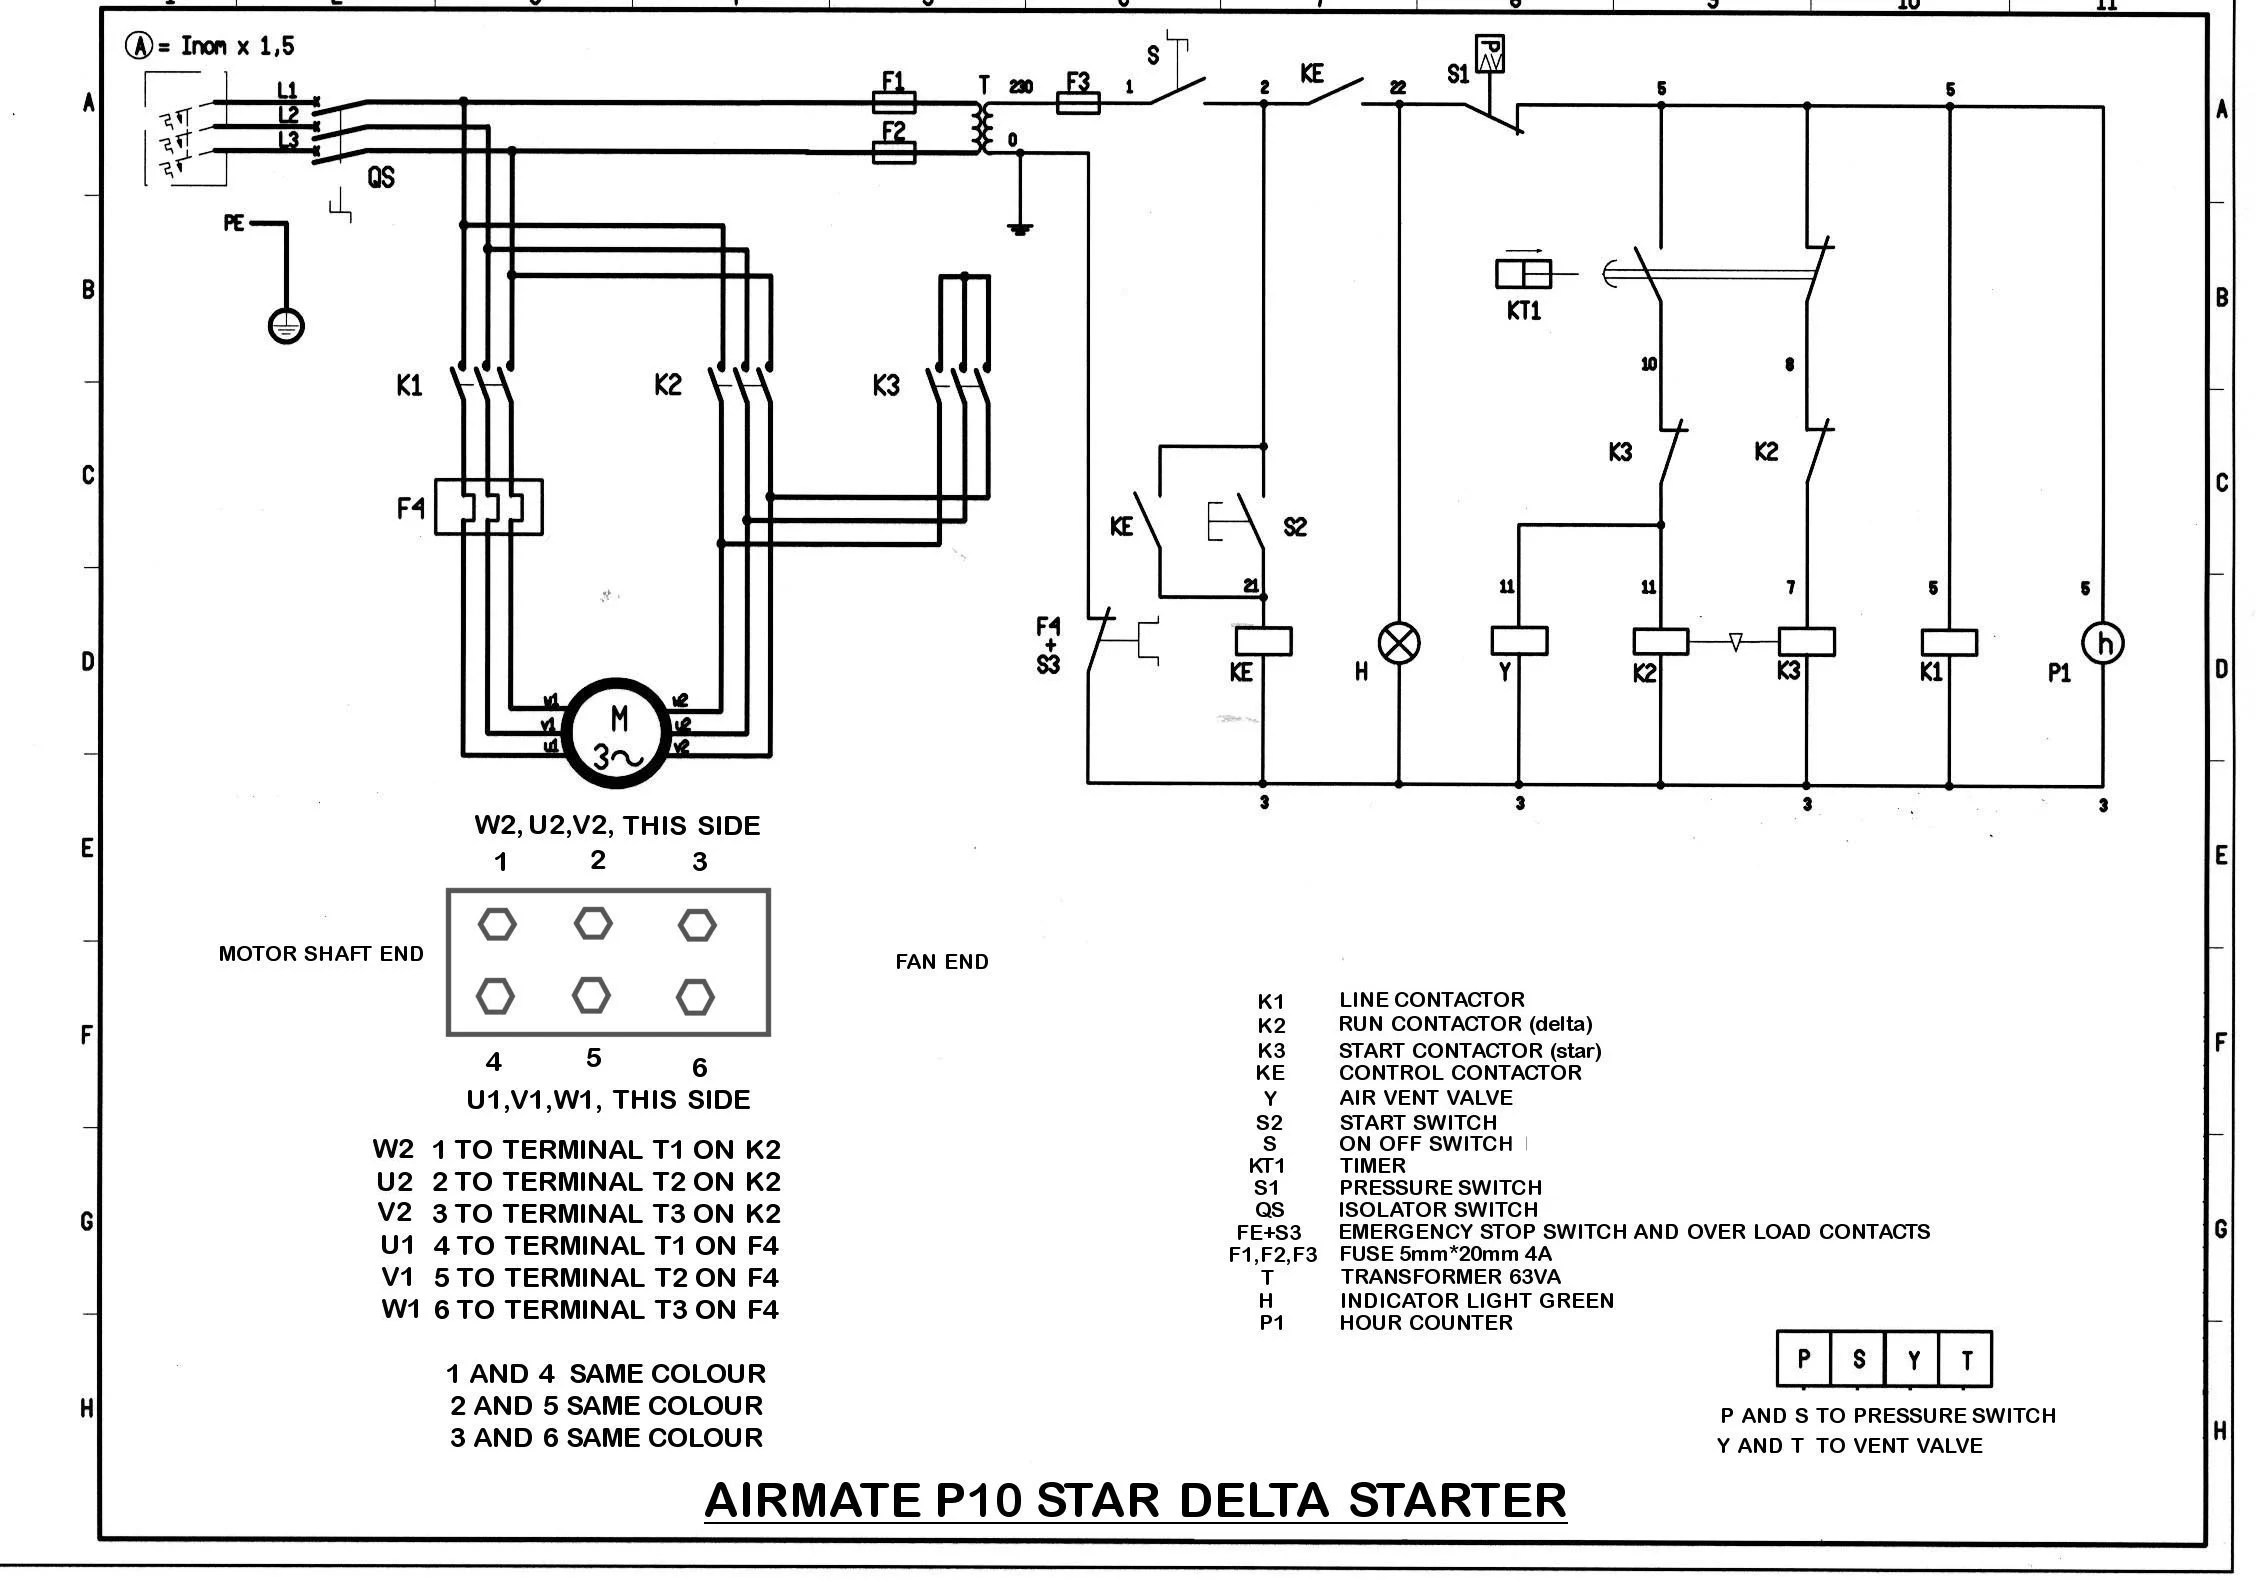 onboard battery charger wiring diagram    wiring       diagram    schumacher    battery       charger       wiring       diagram        wiring       diagram    schumacher    battery       charger       wiring       diagram